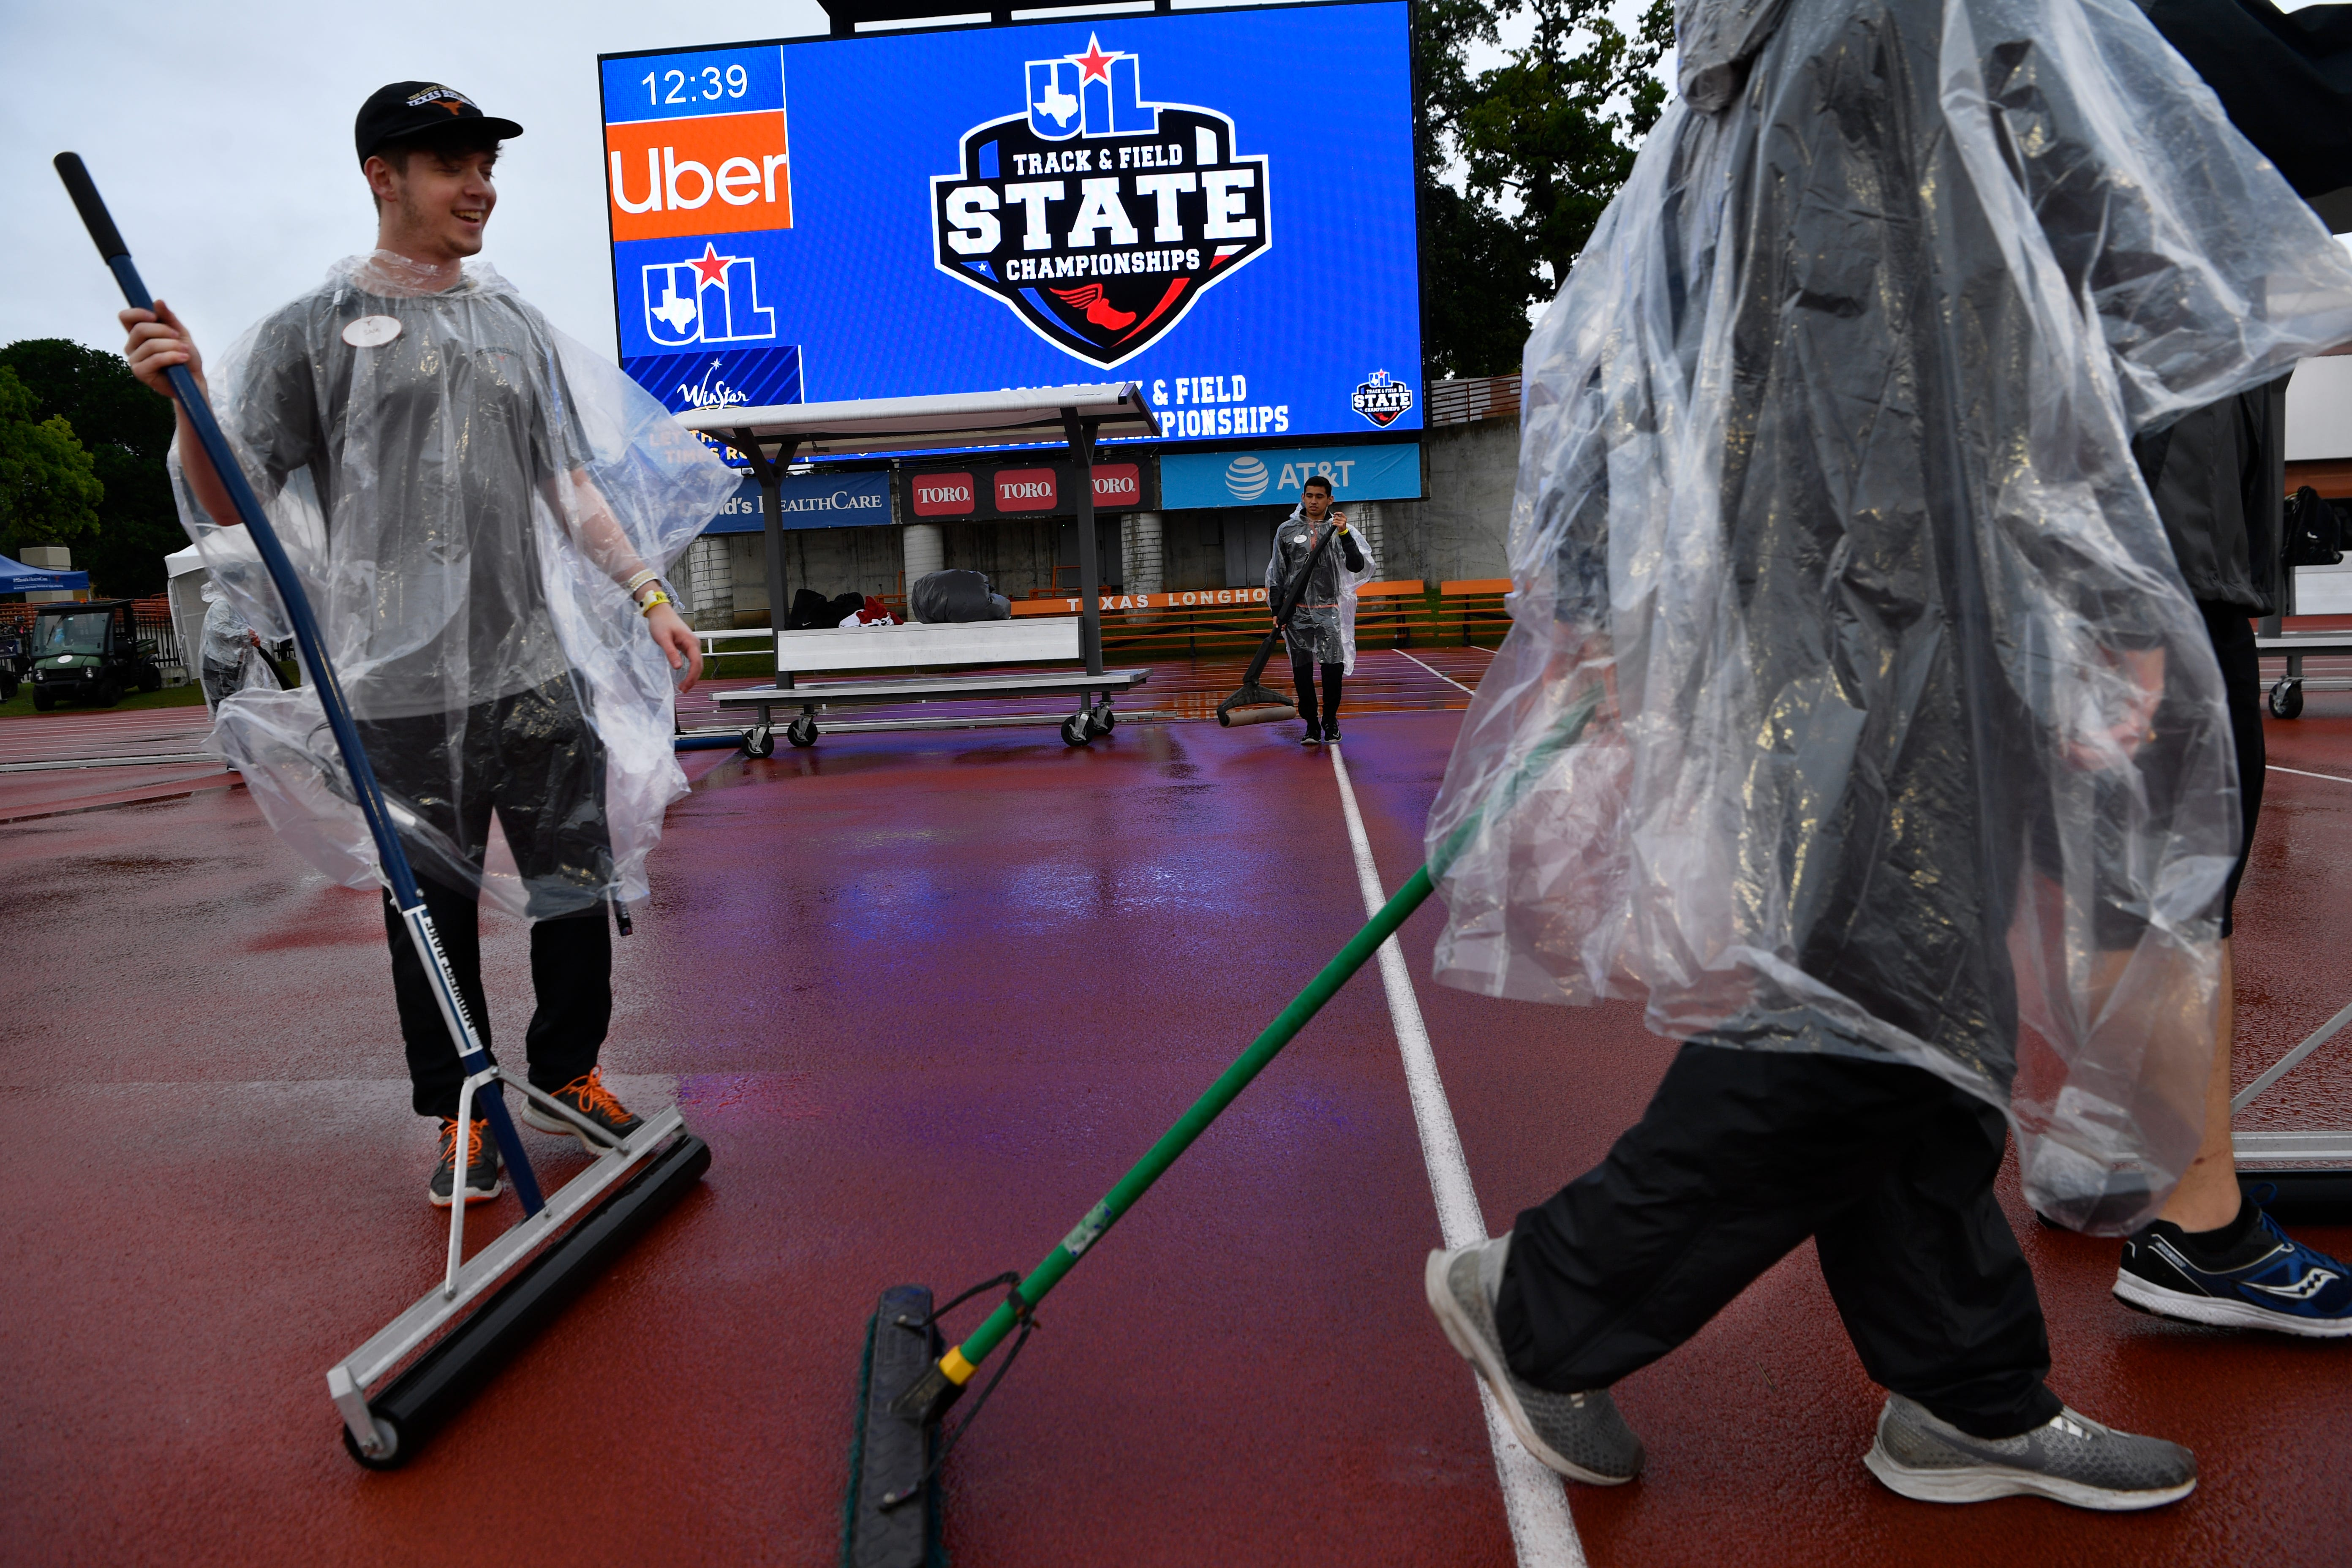 Sam Bellessa (left) and other University of Texas students, sweep the rainwater off the track at Mike A. Myers Stadium Saturday May 11, 2019. Rain delayed the UIL State Track & Field Championships in Austin for over an hour.